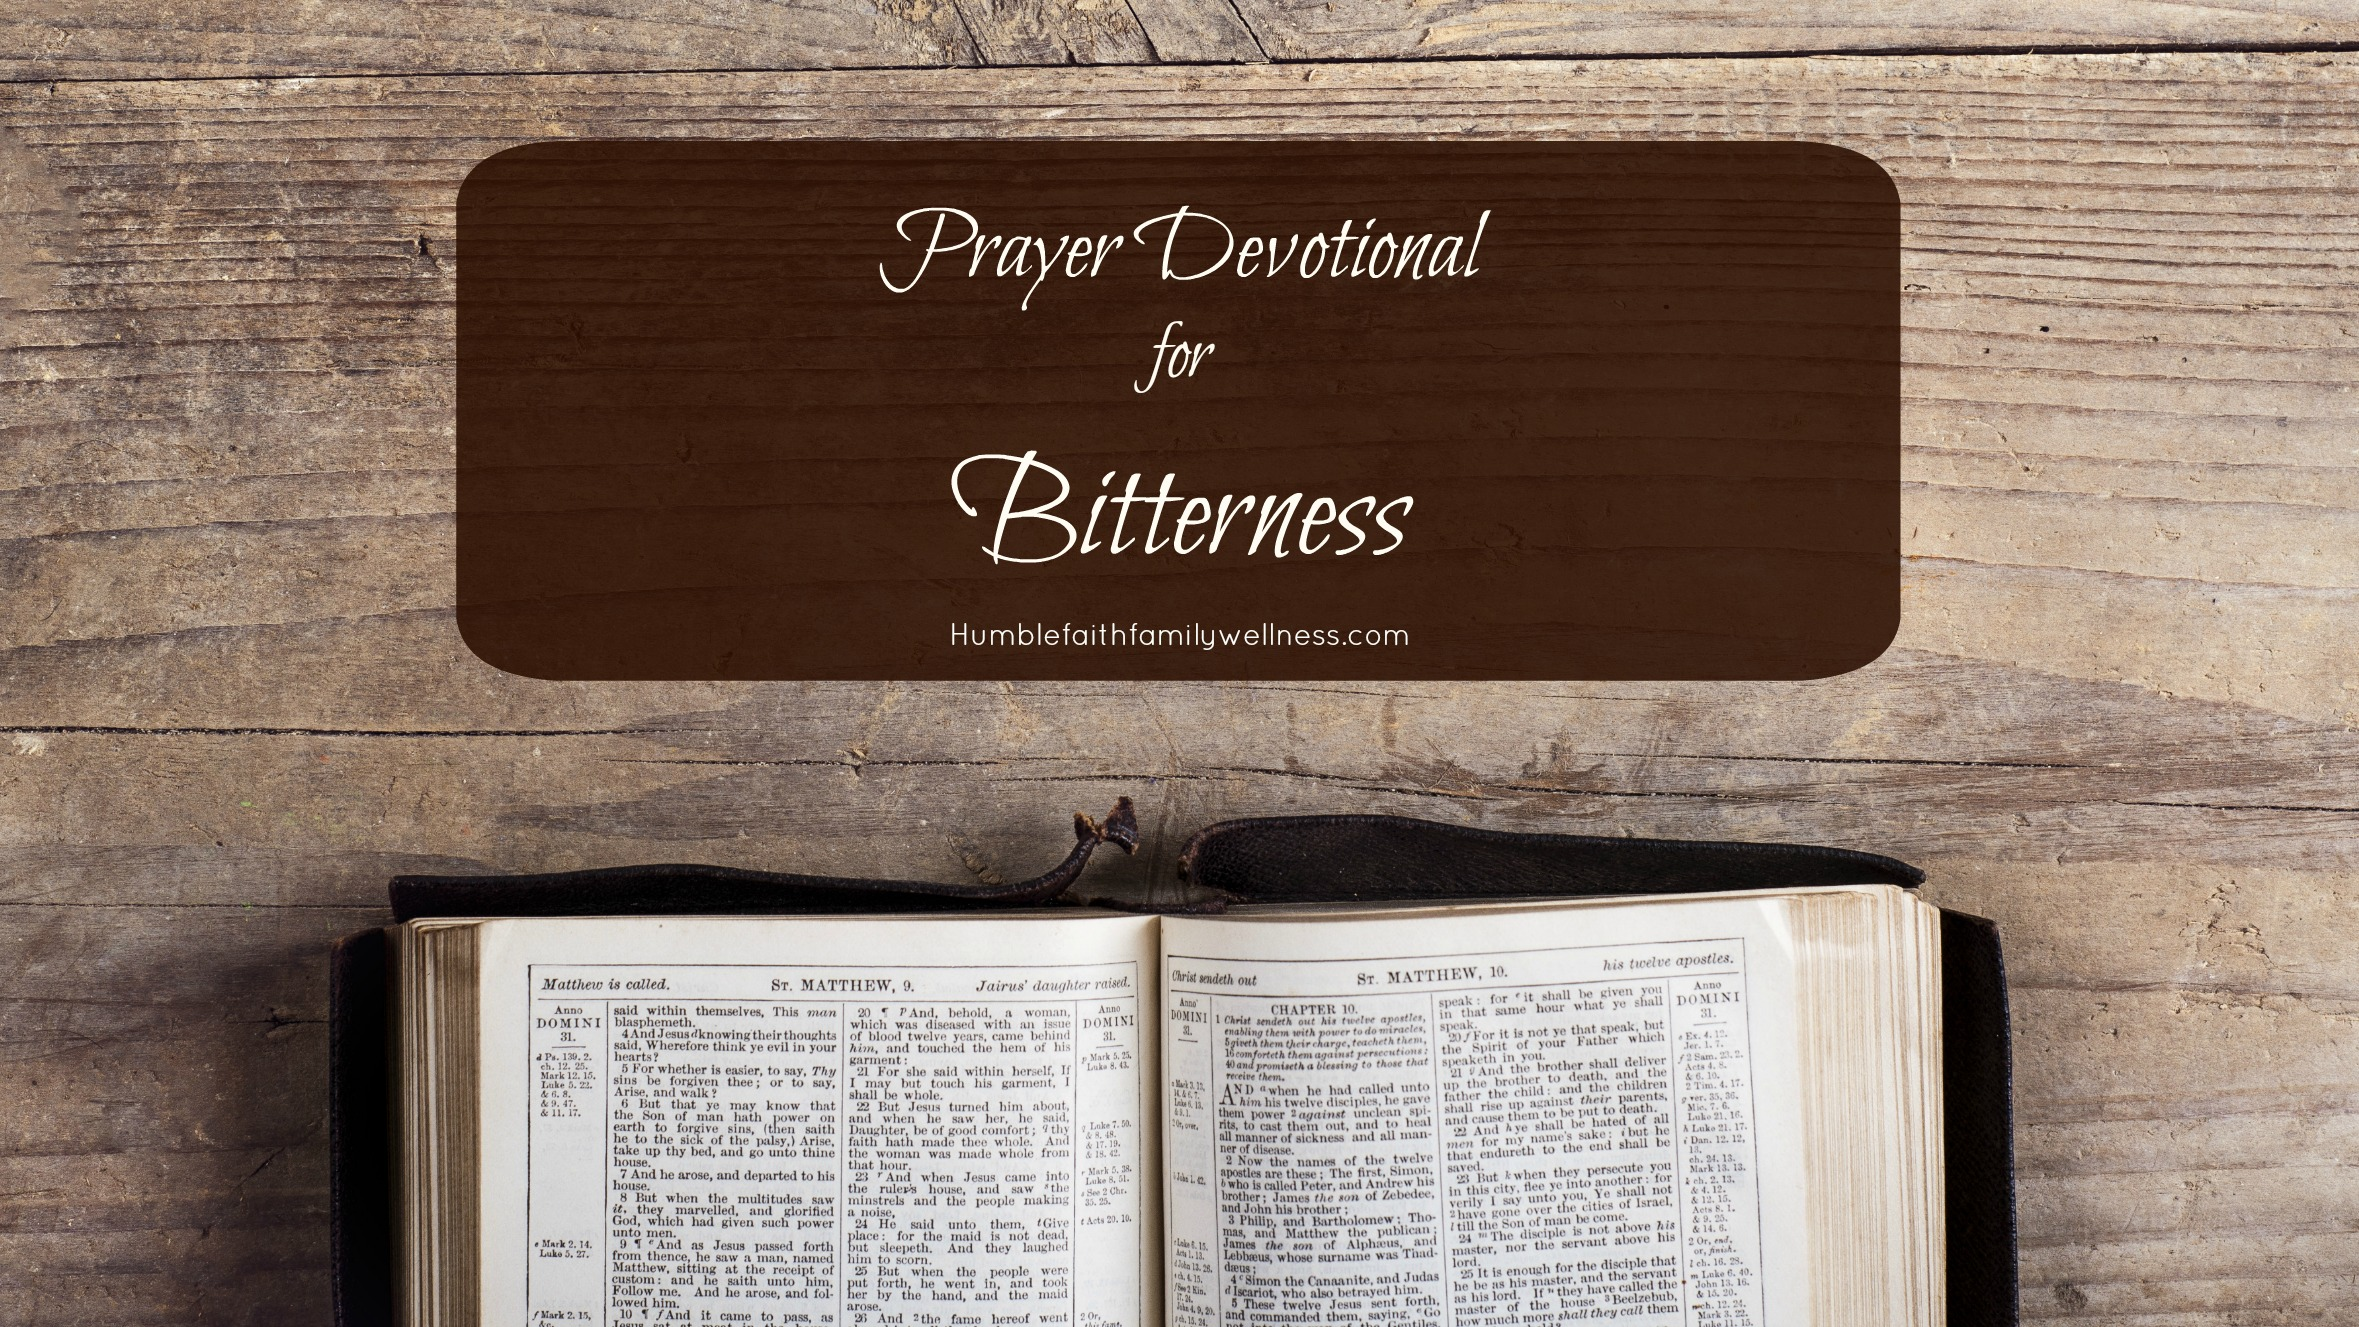 Bitterness, Prayer devotional